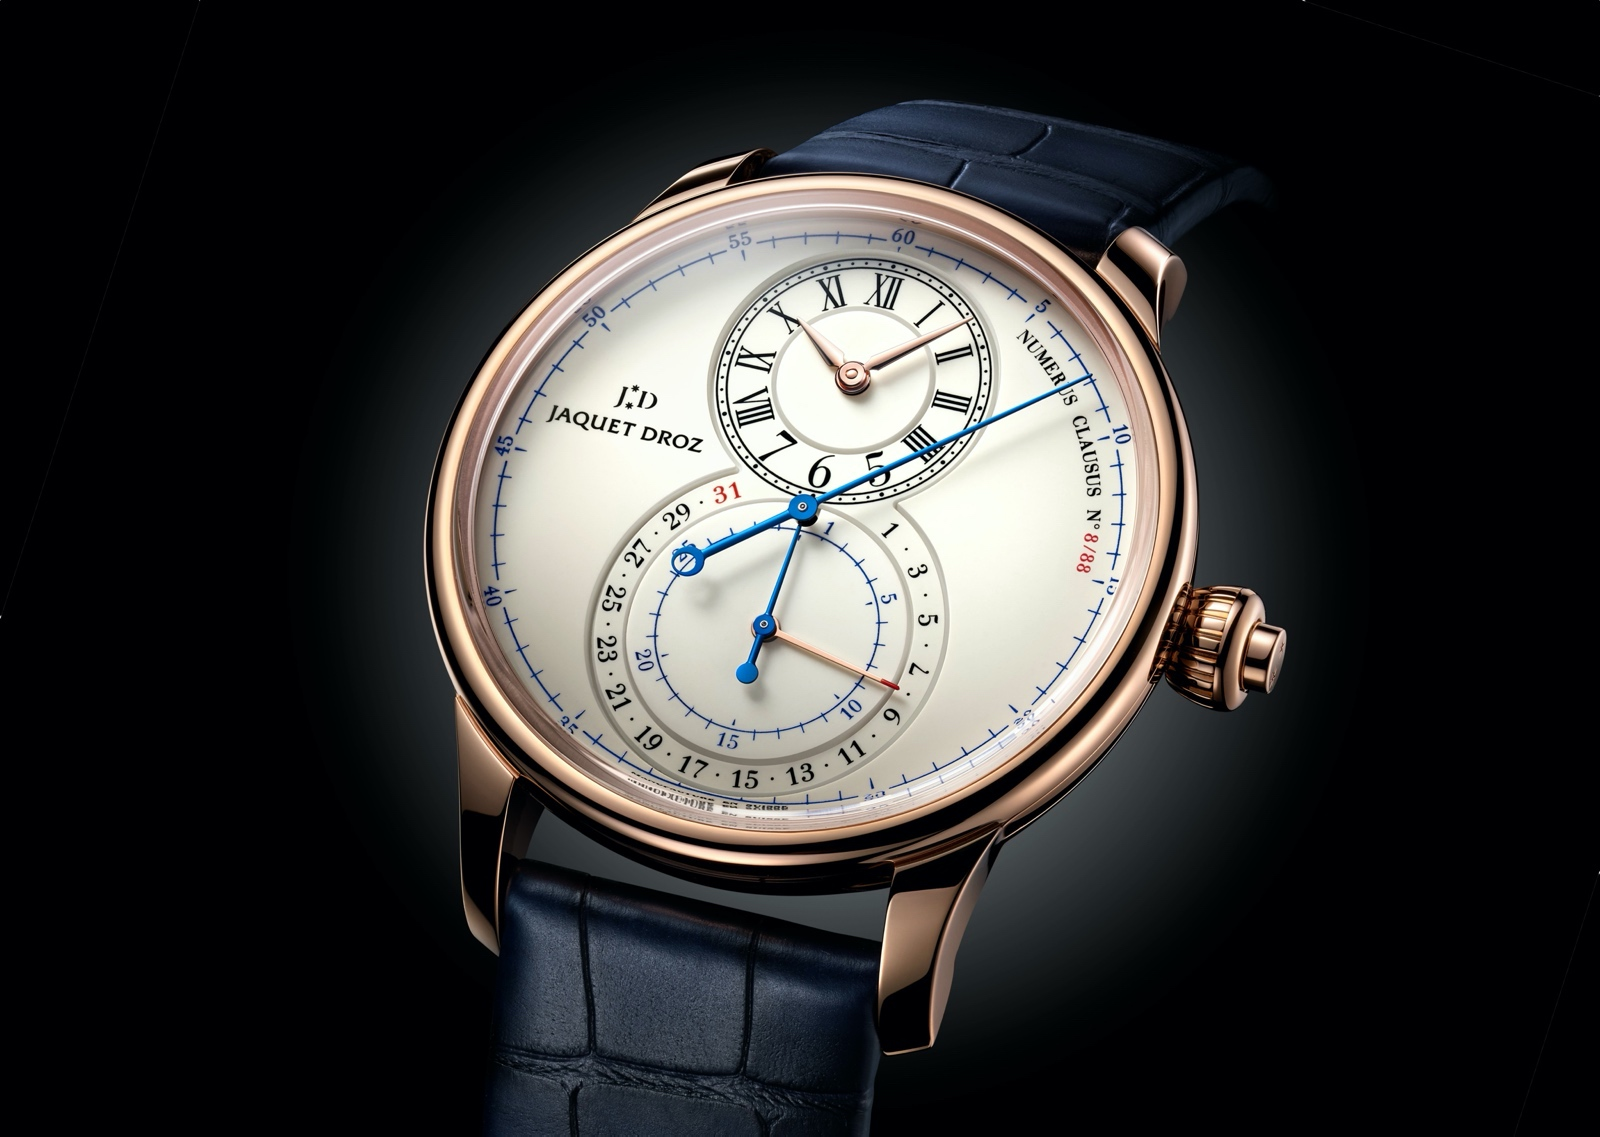 Jaquet Droz Grande Seconde Chronograph - gold